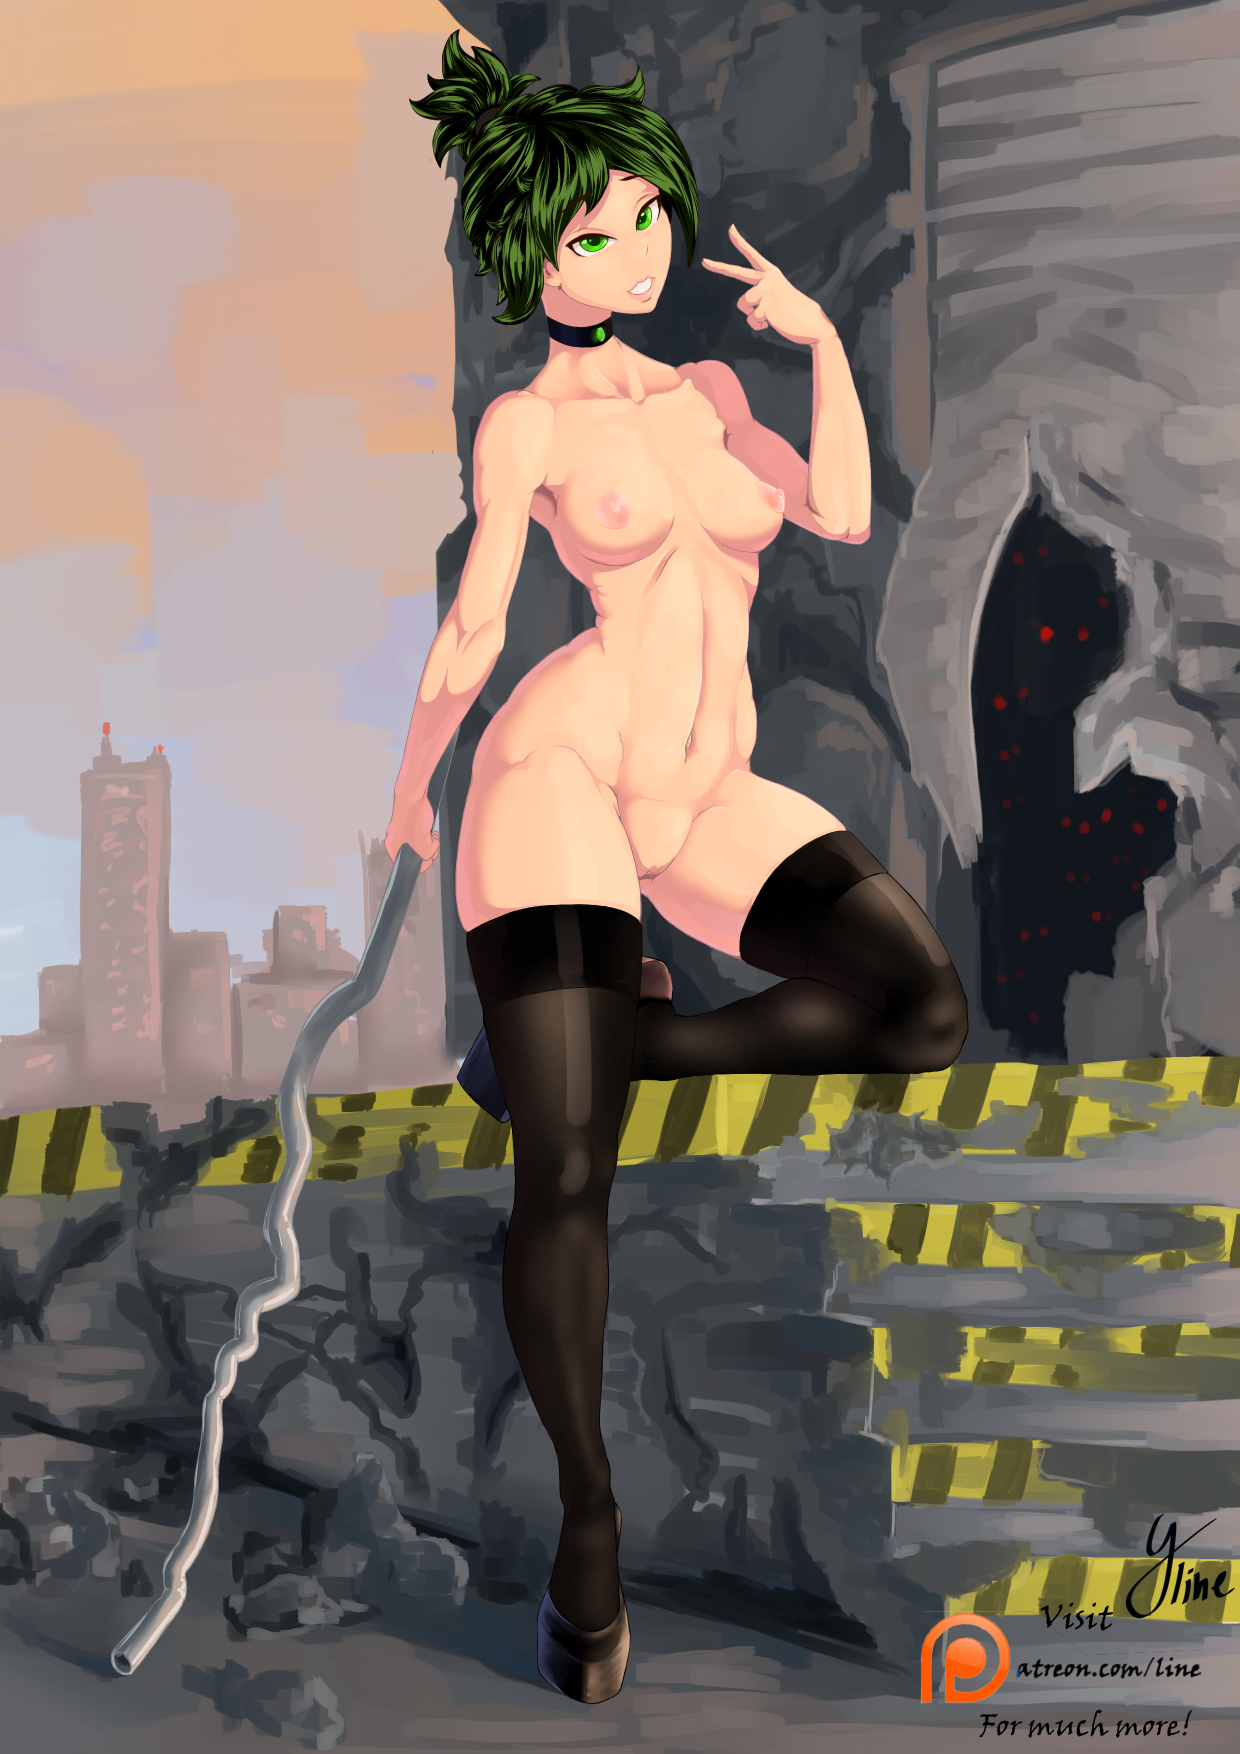 Ryuuko pin-up nude